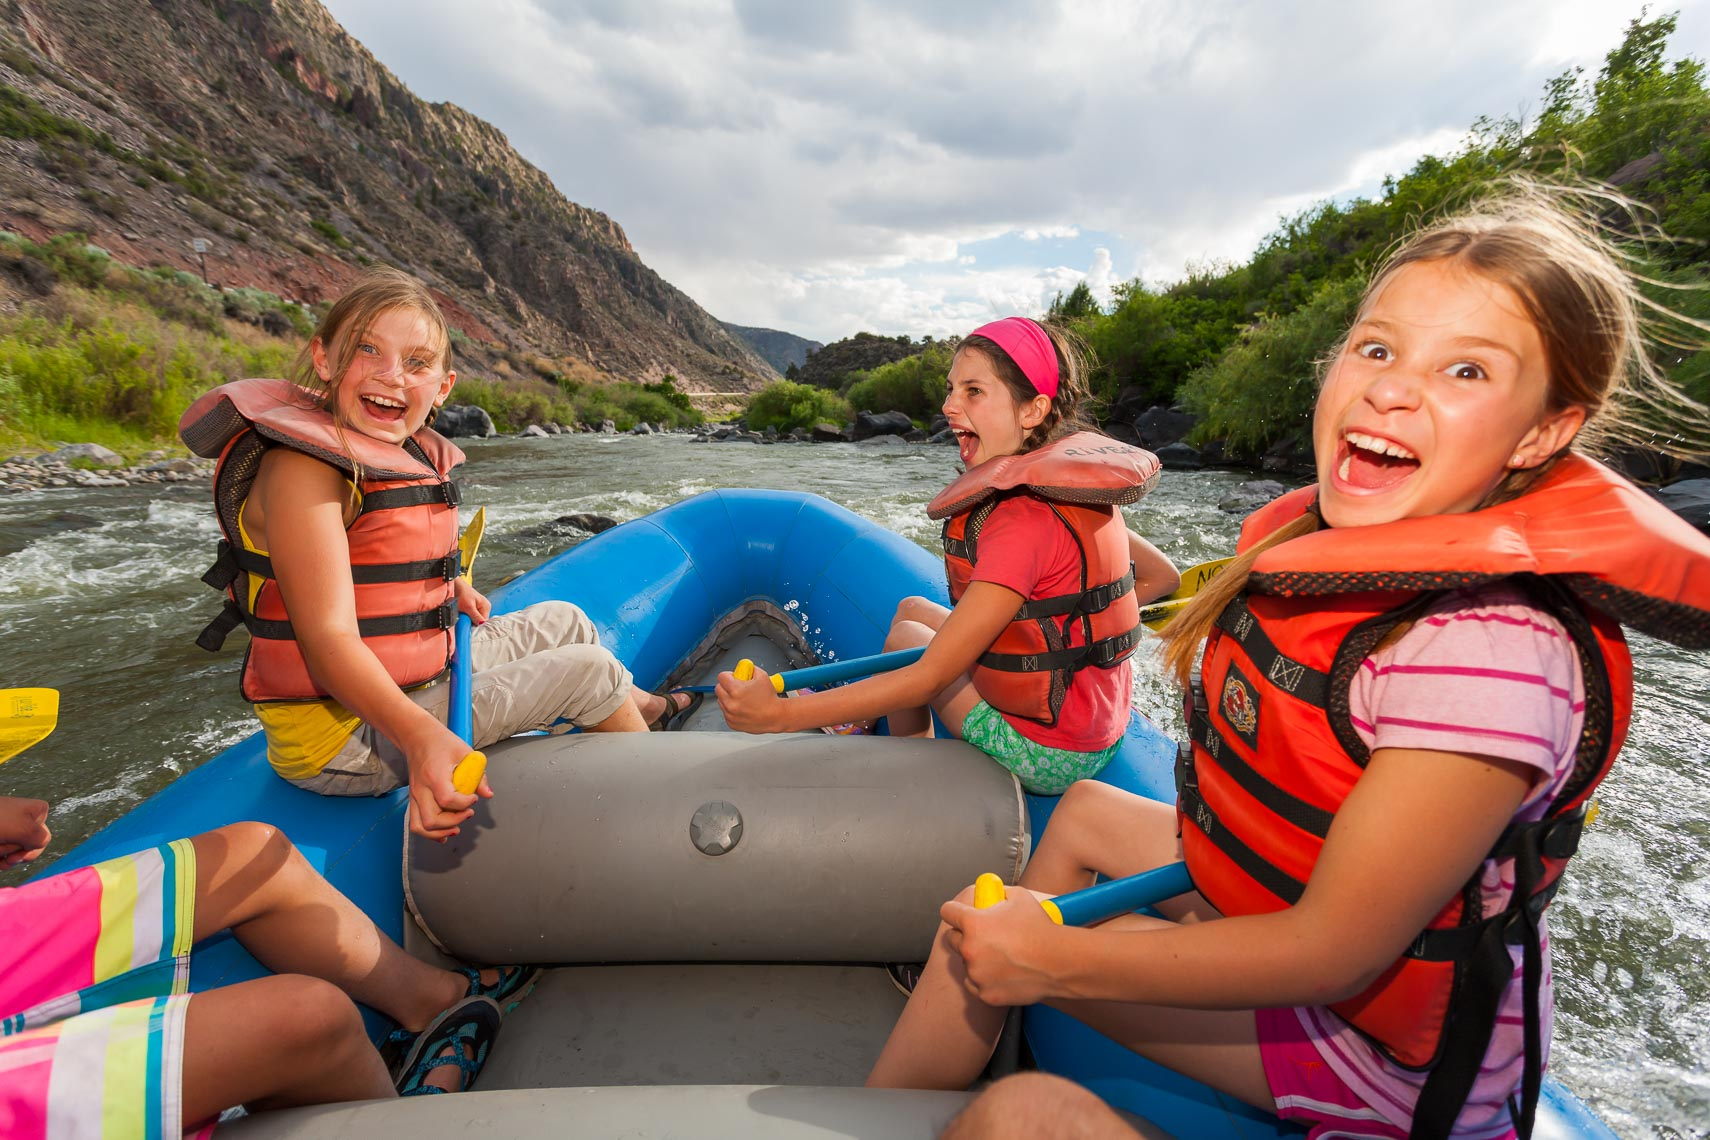 Taos New Mexico Whitewater Rafting | Michael DeYoung Photographer